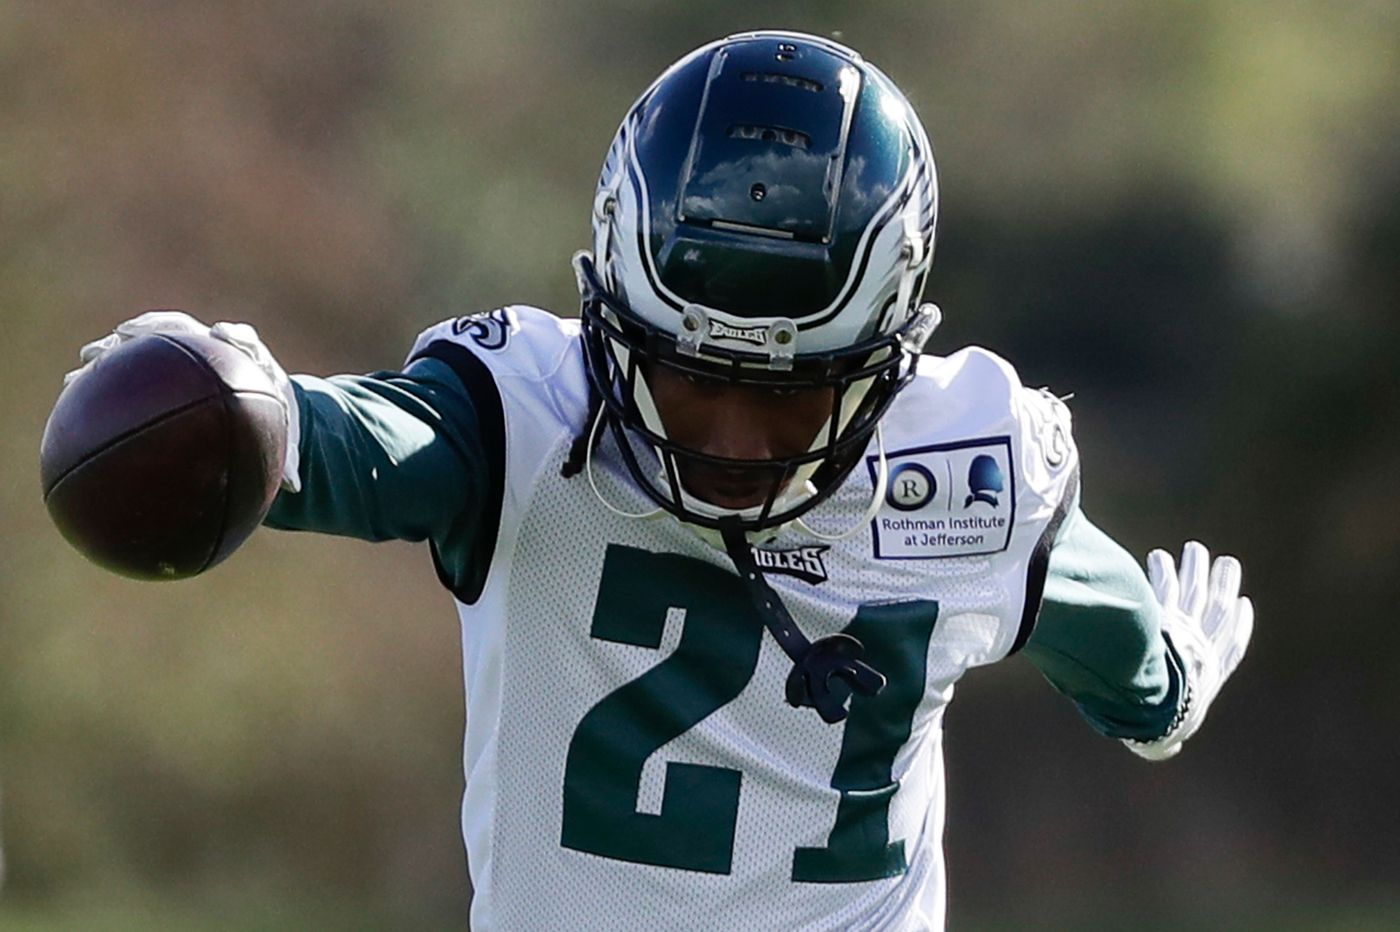 Eagles cornerback Ronald Darby still aiming to play Week 1, expects to participate in training camp